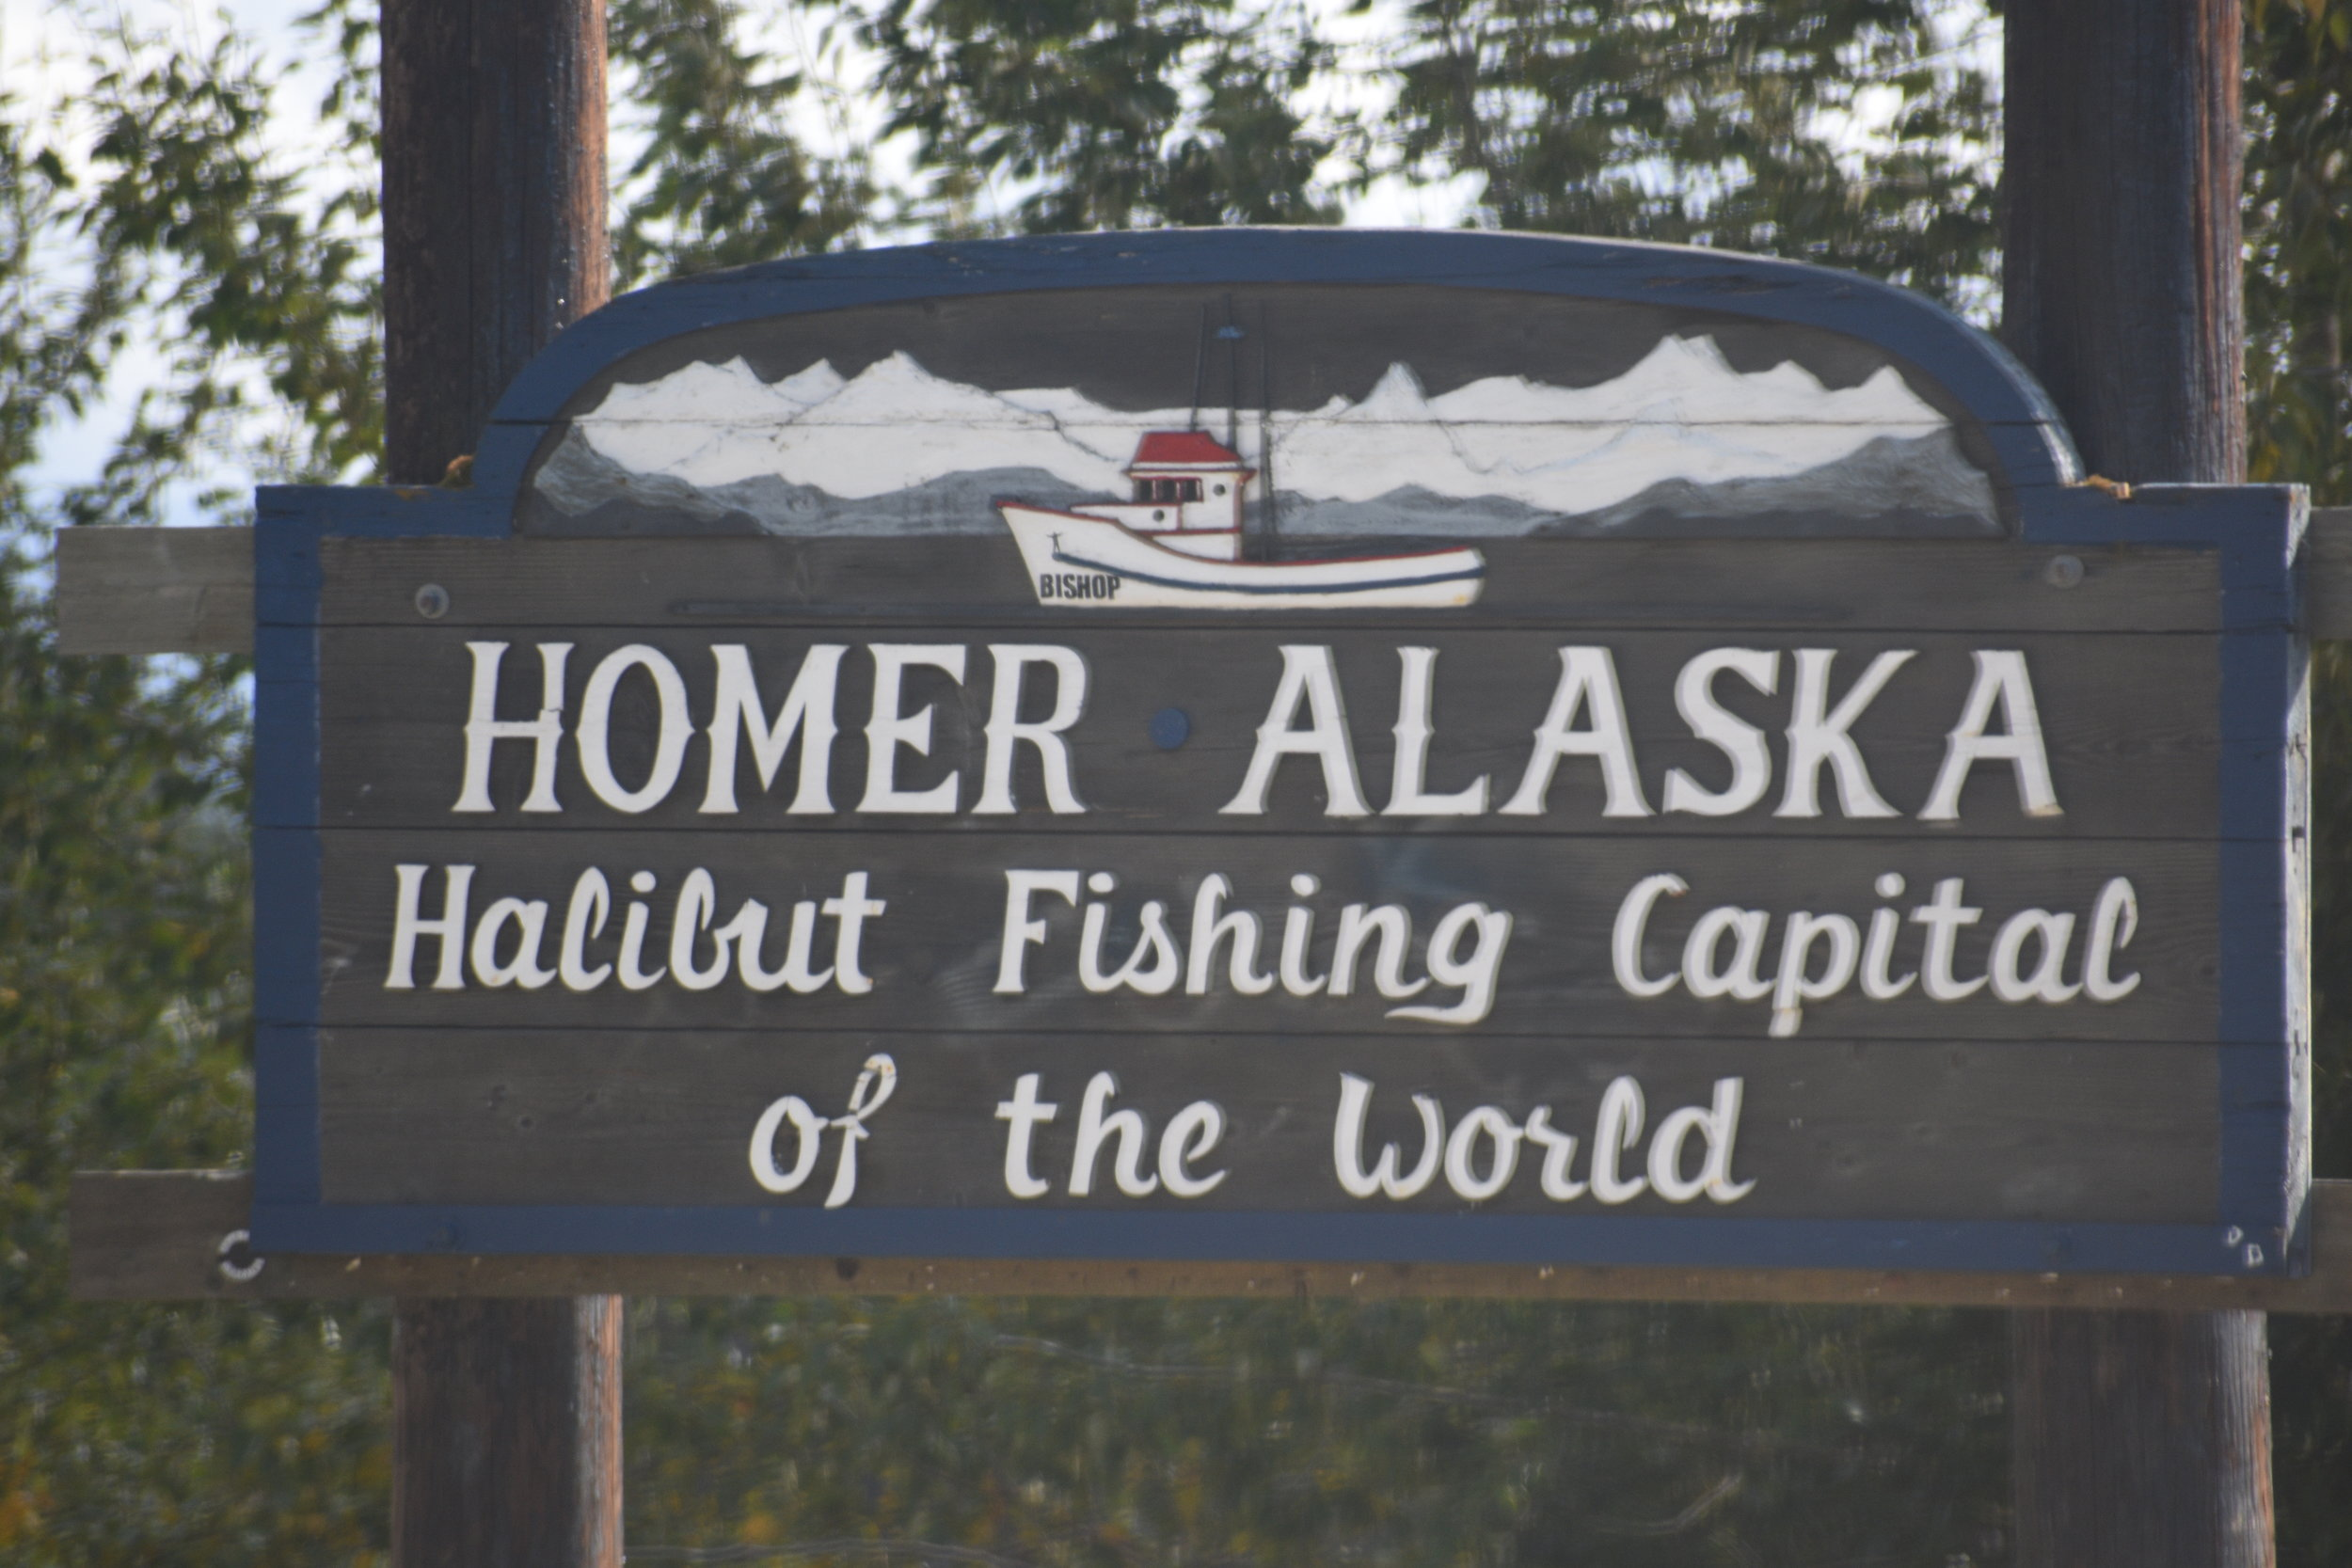 Homer is truly the mecca for Halibut fishing the world over!